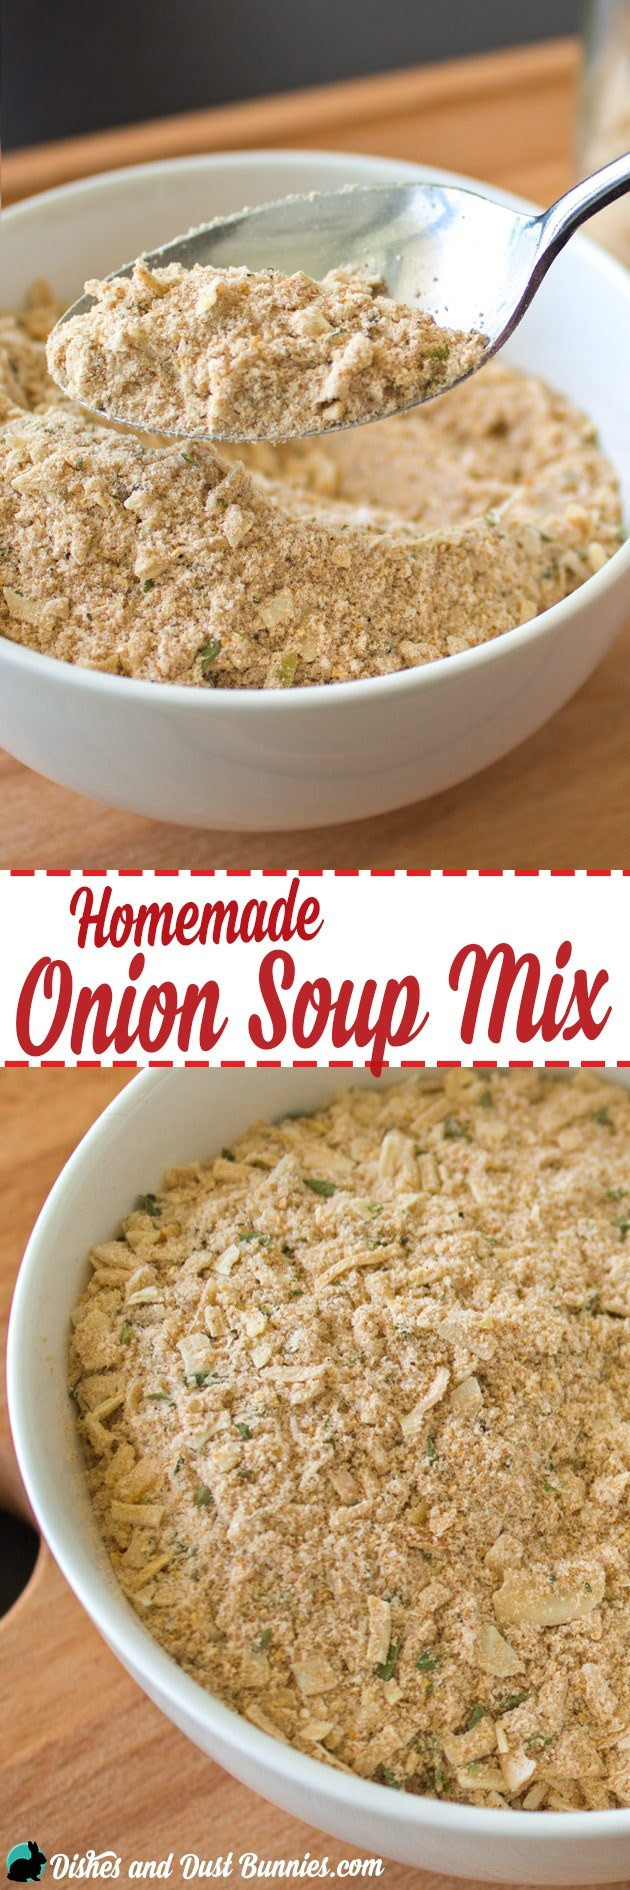 Homemade Onion Soup Mix  Homemade ion Soup Mix Dishes and Dust Bunnies